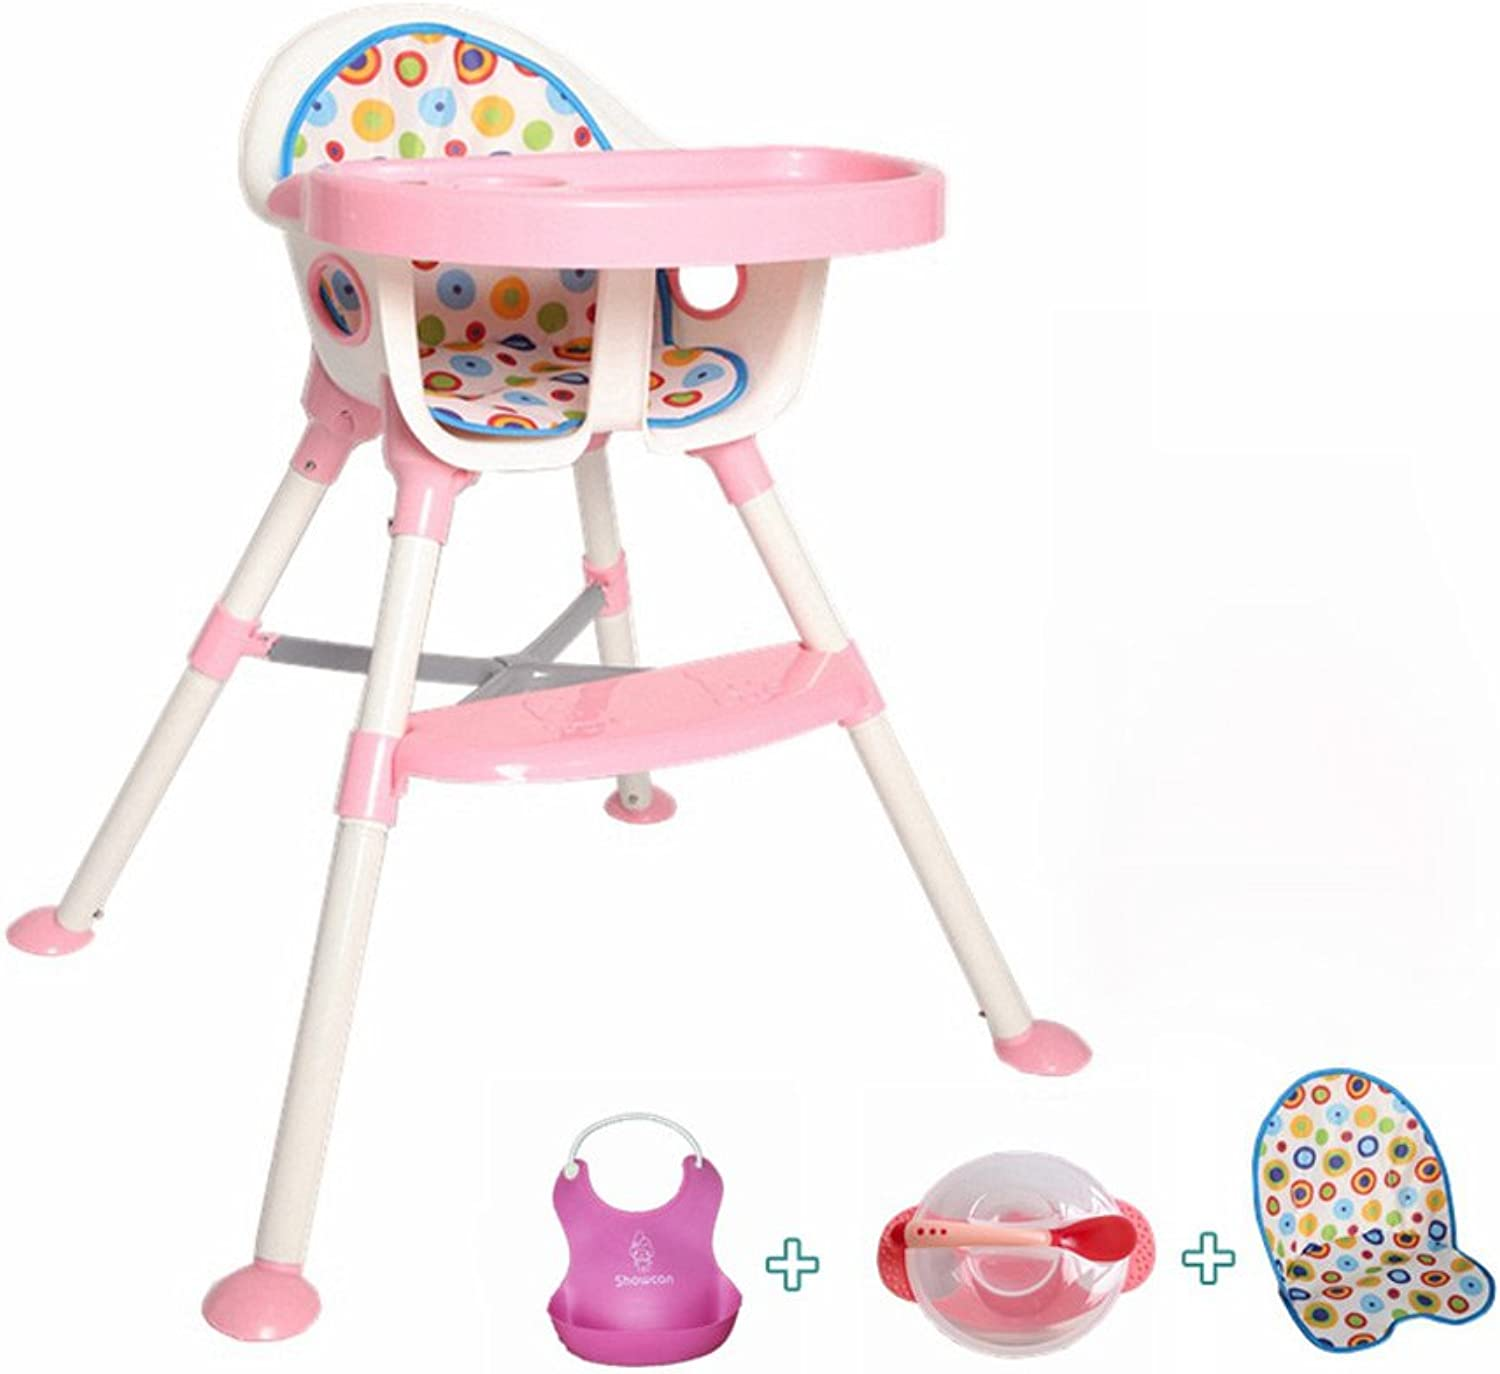 Portable Baby High Chair, Baby Feeding Lounge Chair, Plastic Folding Dining Chair, L78  W57  H83cm, Bearing 30kg (Pink)